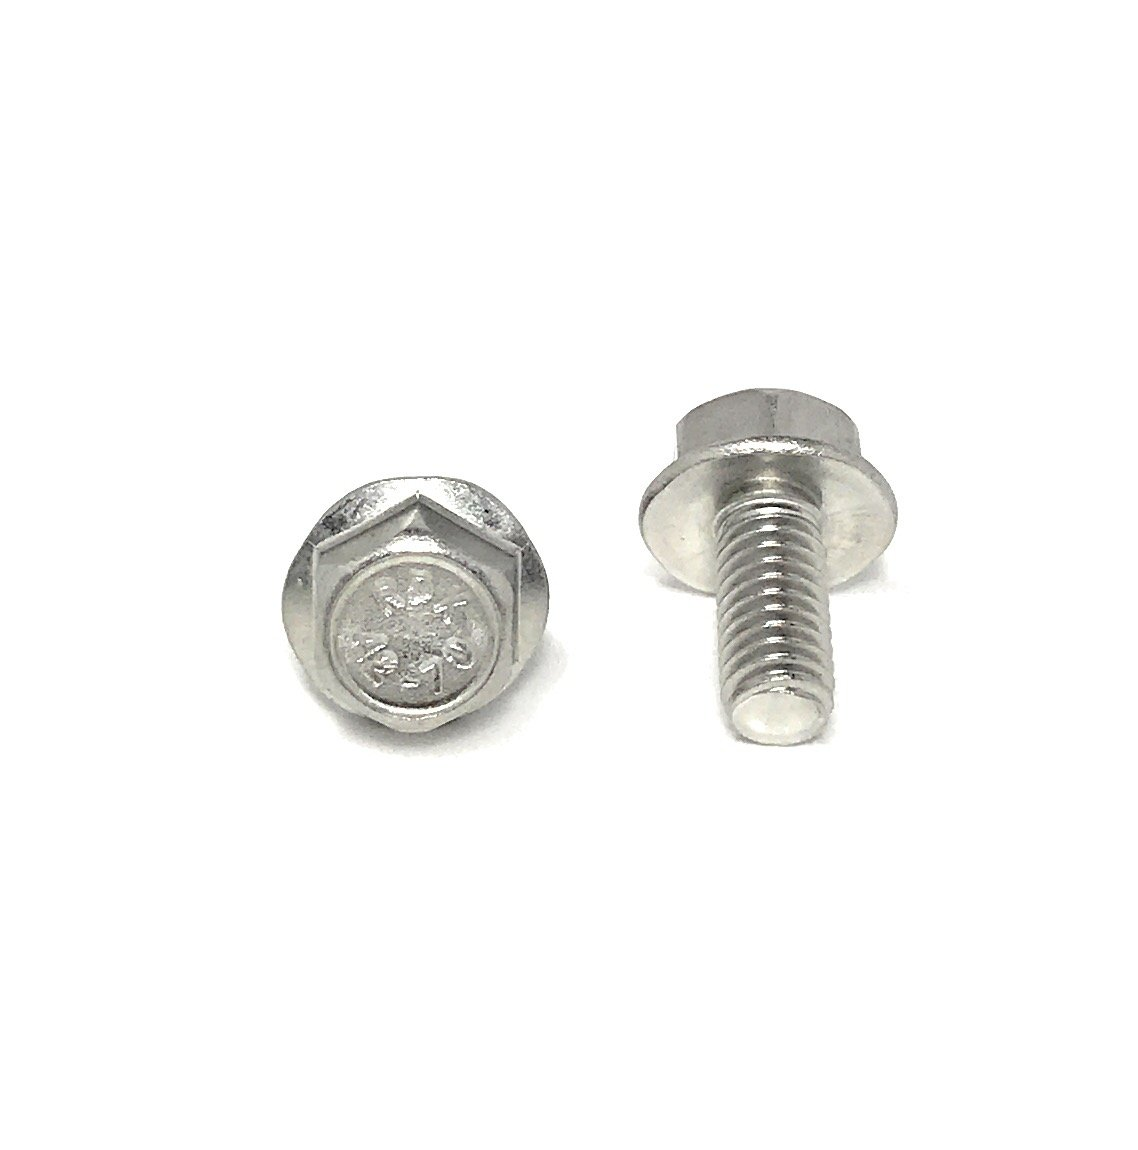 M6-1.00 x 12 Stainless Steel Flange Bolt DIN 6921 A2 Stainless Steel (25 Pieces) M6x12